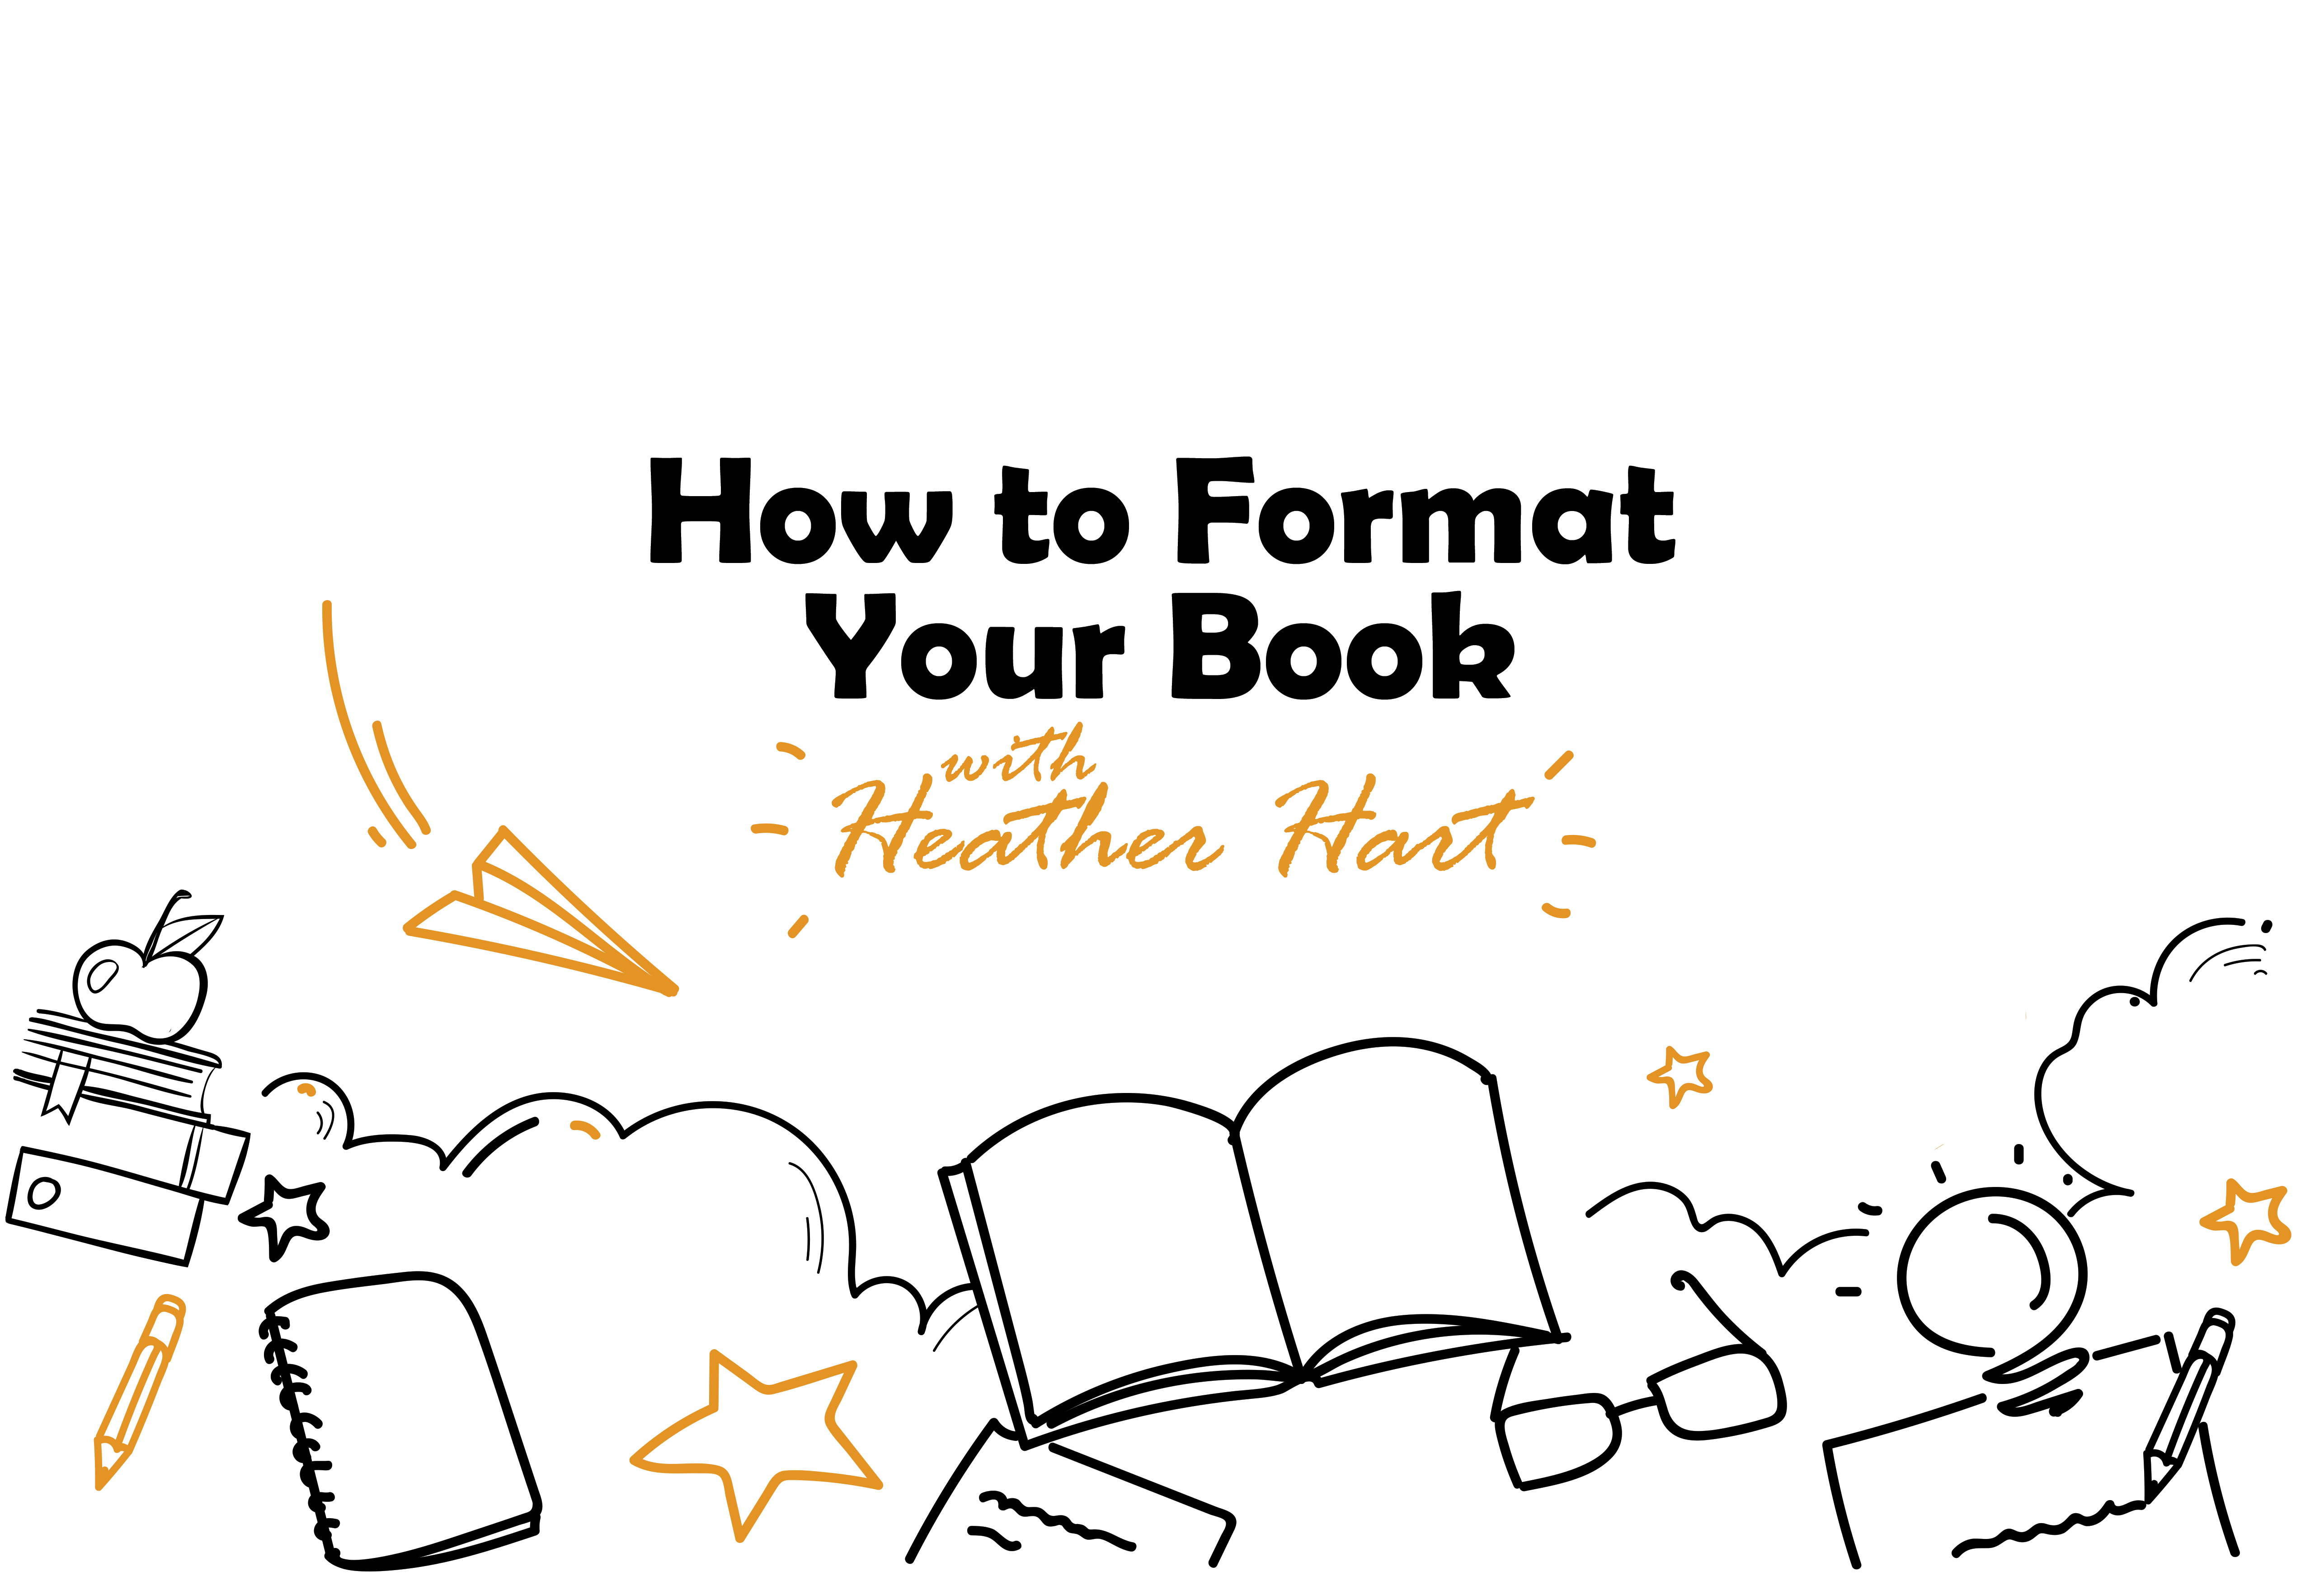 How to Format Your Book